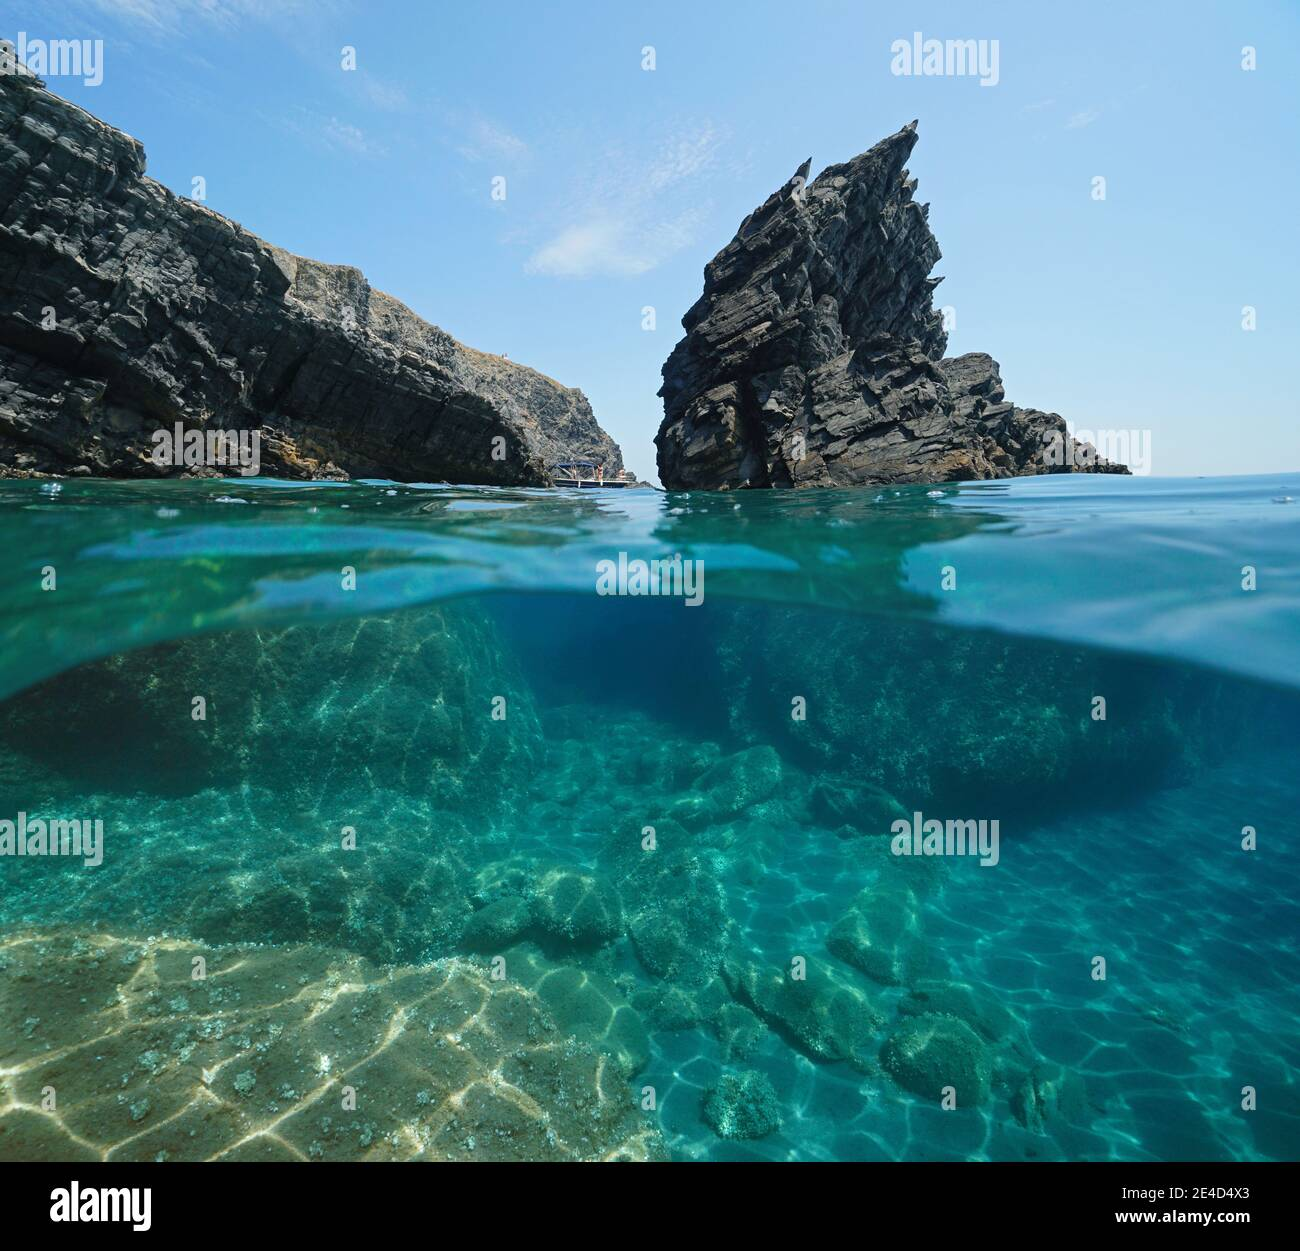 Seascape Mediterranean sea, rugged rock and rocky coast, split view half over and under water, Cap Cerbere at the border between Spain and France Stock Photo